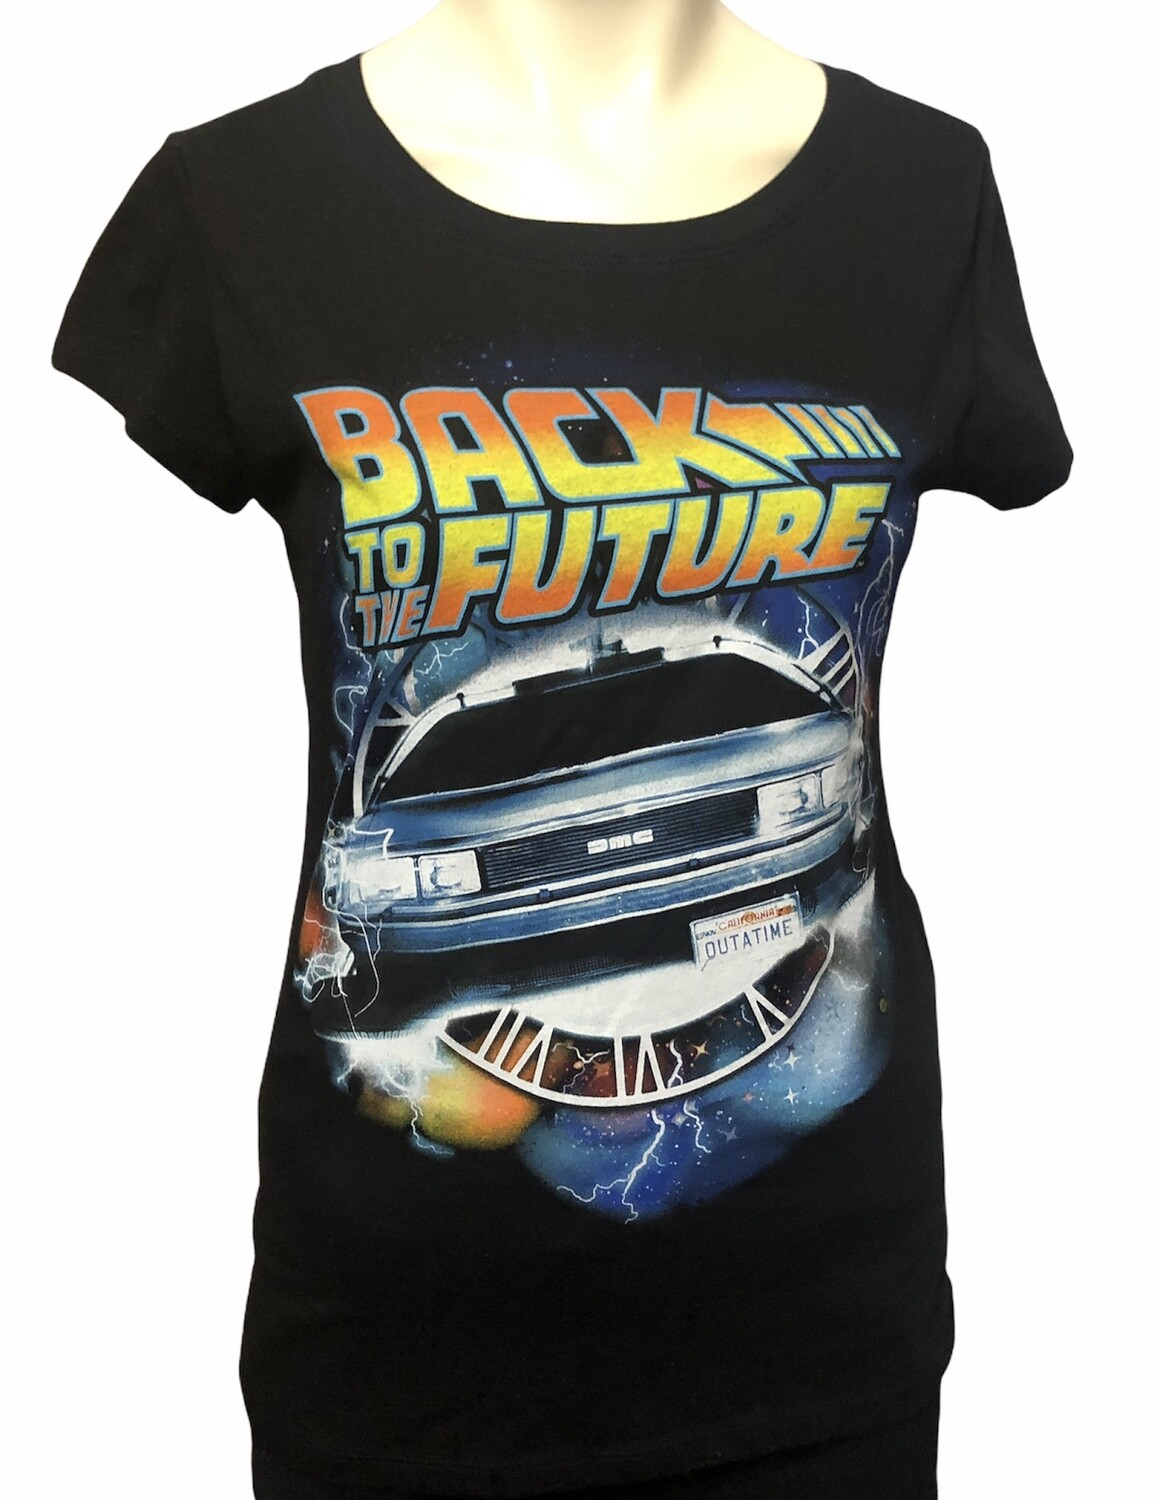 BACK TO THE FUTURE Black Graphic T-Shirt Large